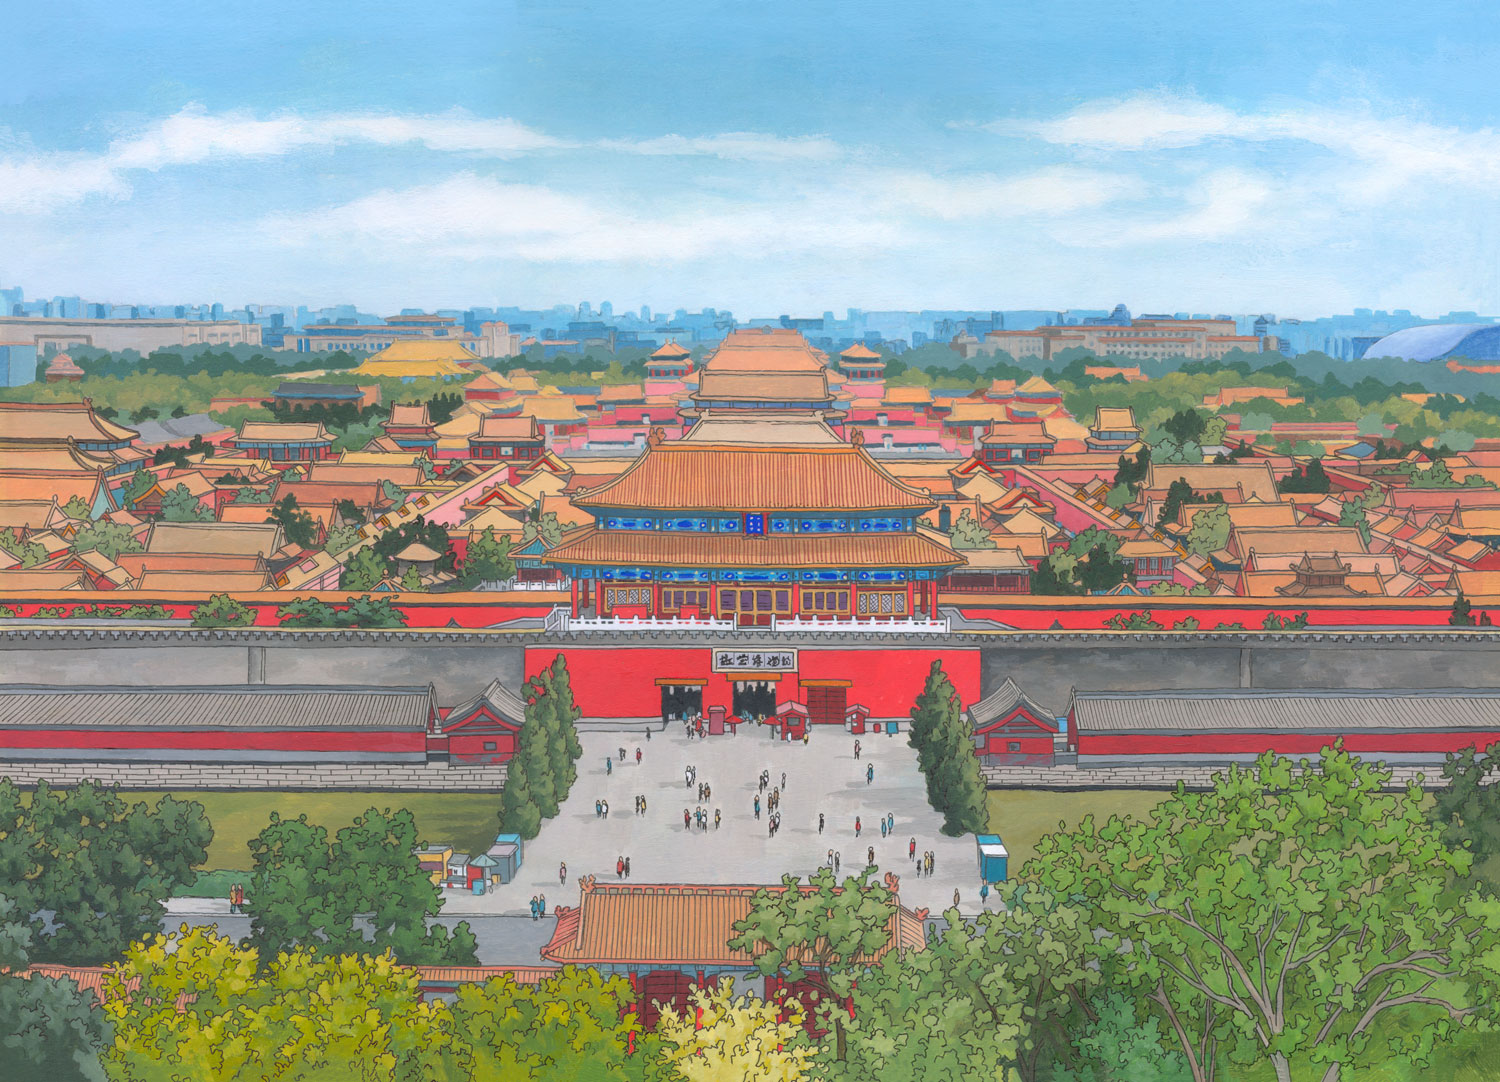 Forbidden-City-Beijing-Illustration-by-Jonathan-Chapman